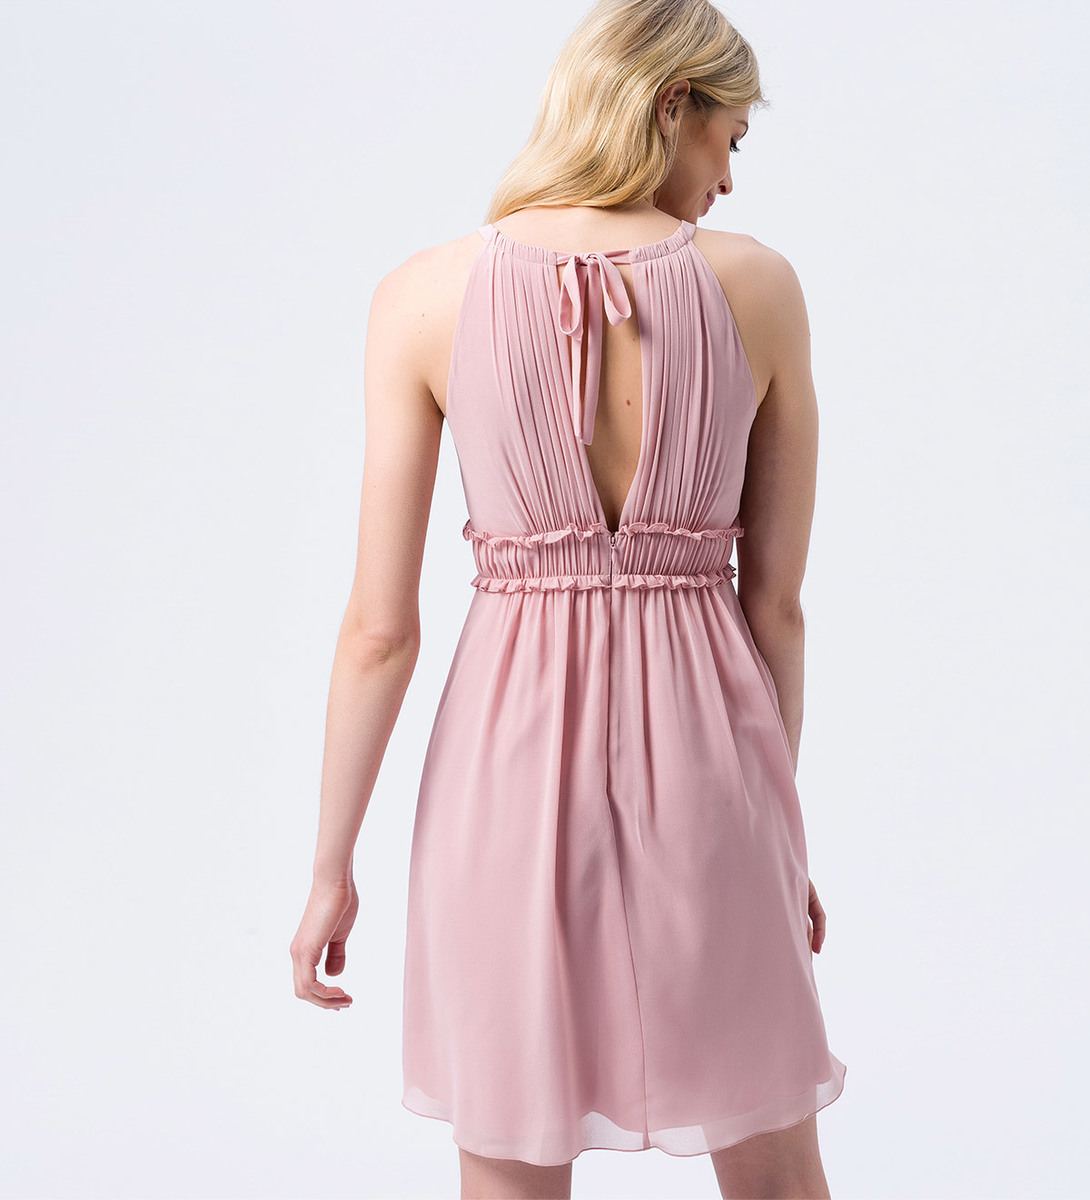 Kleid im Neckholder-Design in rose